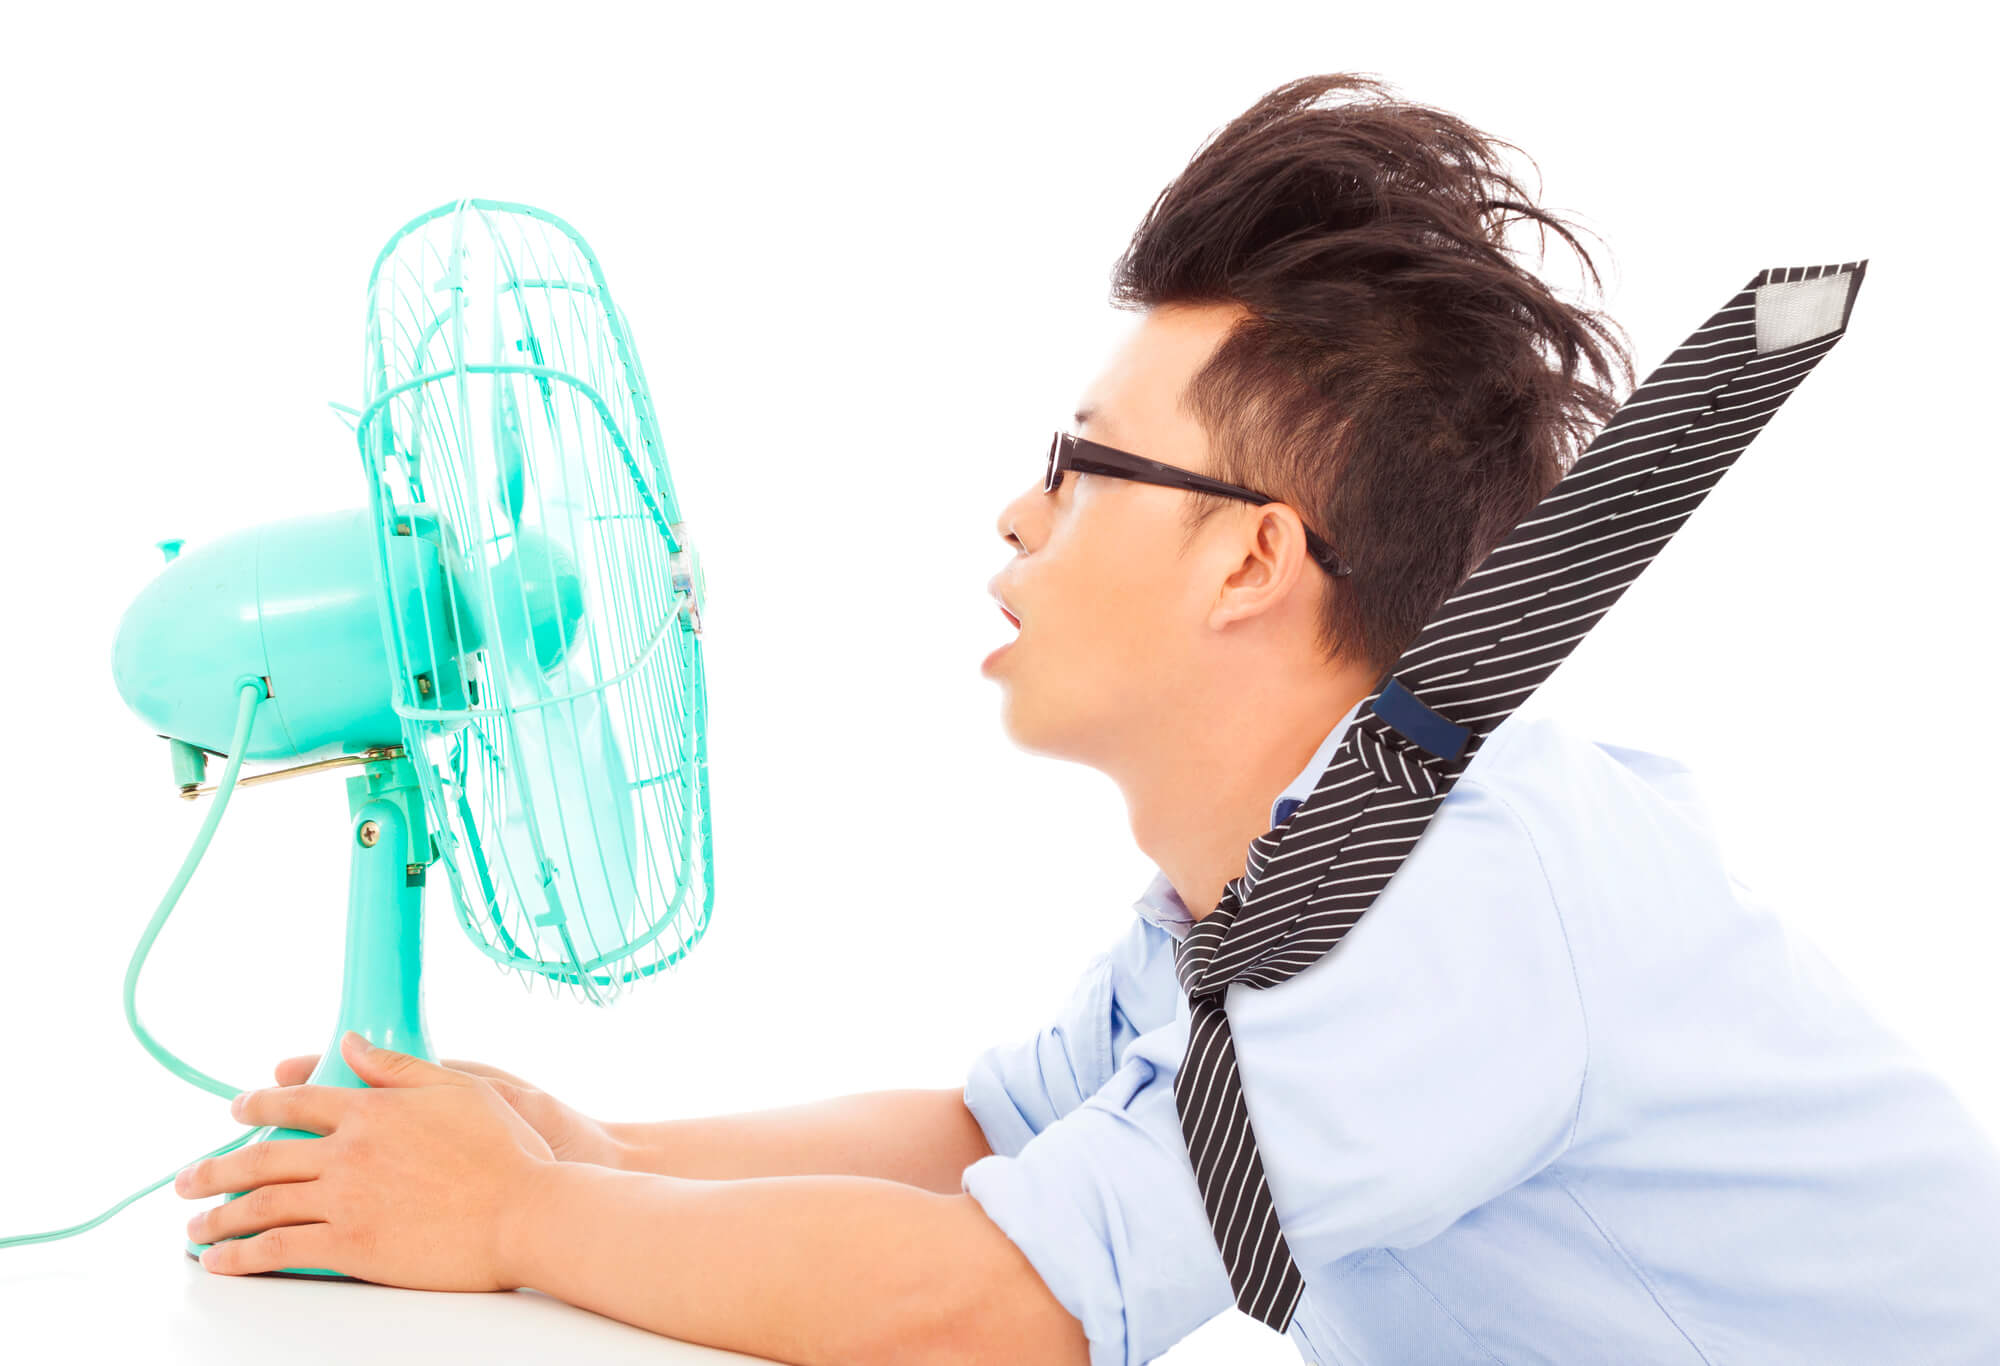 Business man use fans to cool down.